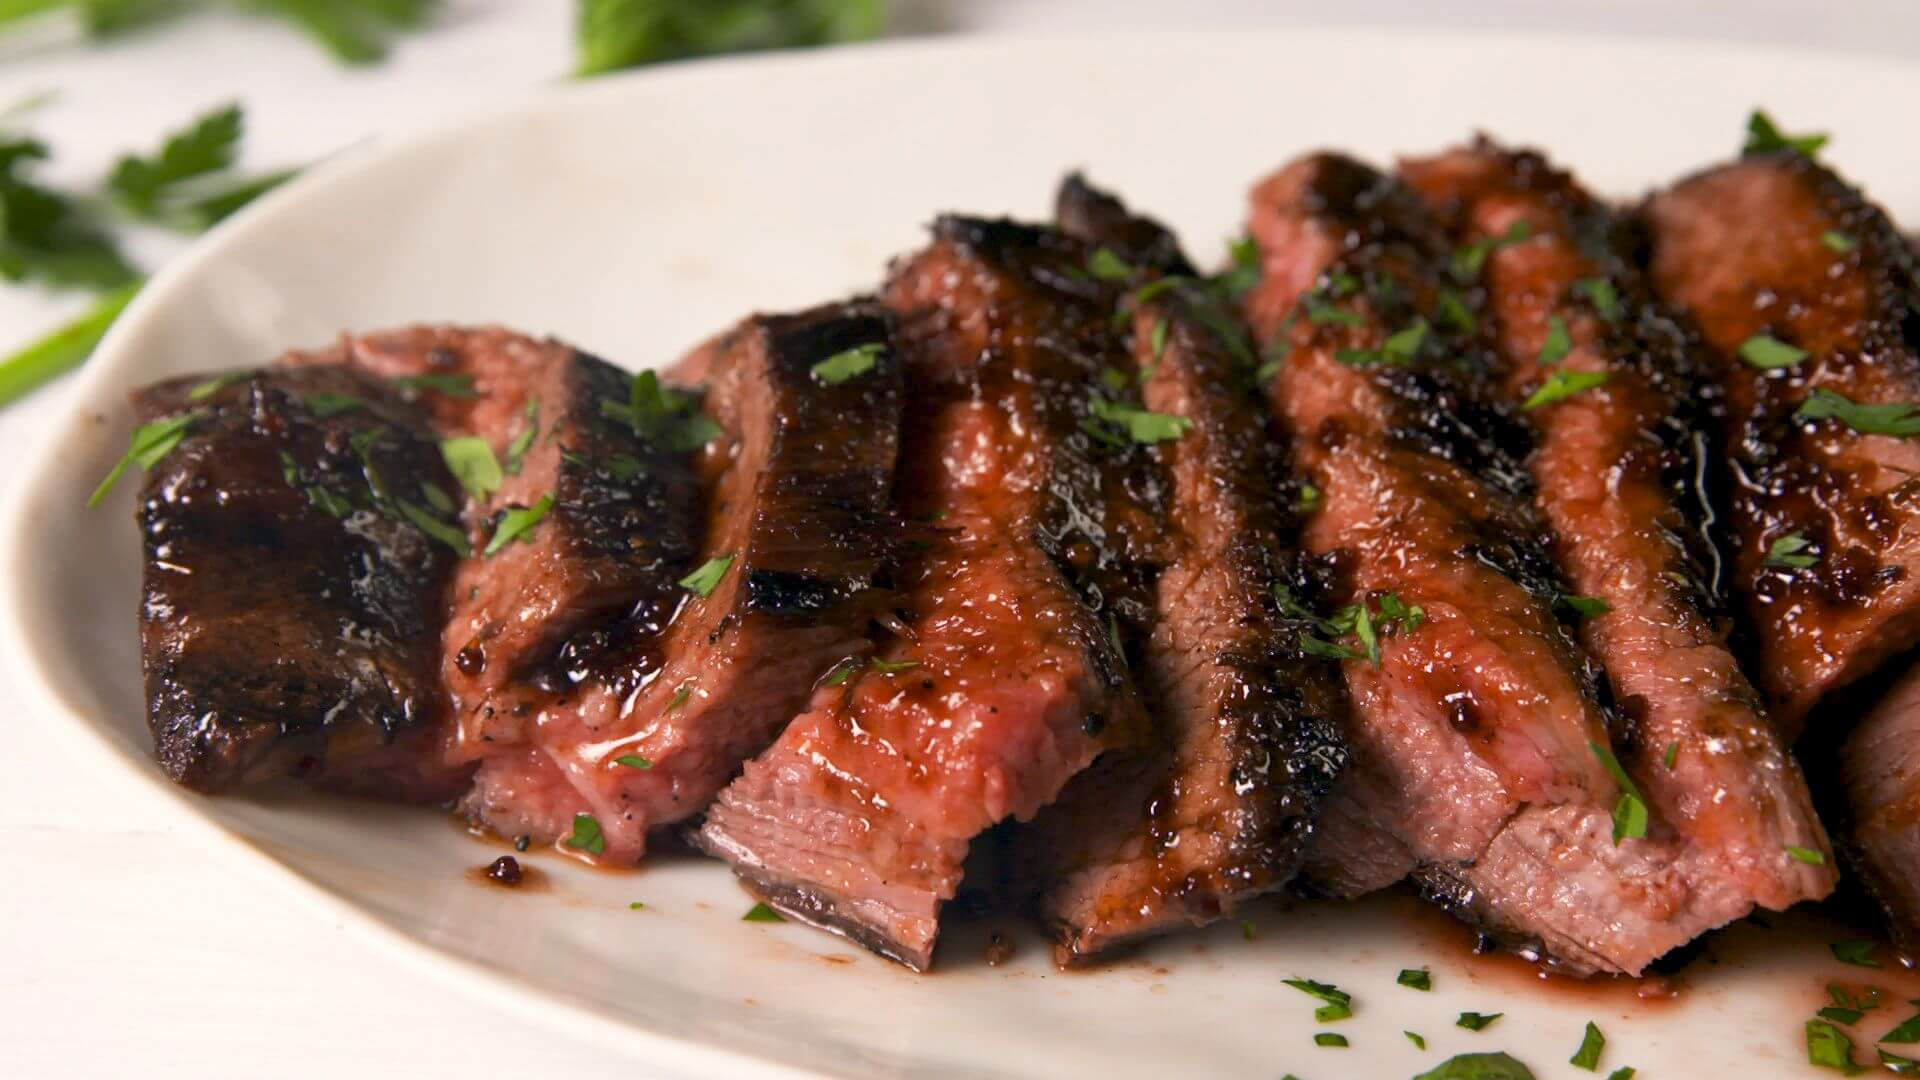 3. Cajun Butter Steak